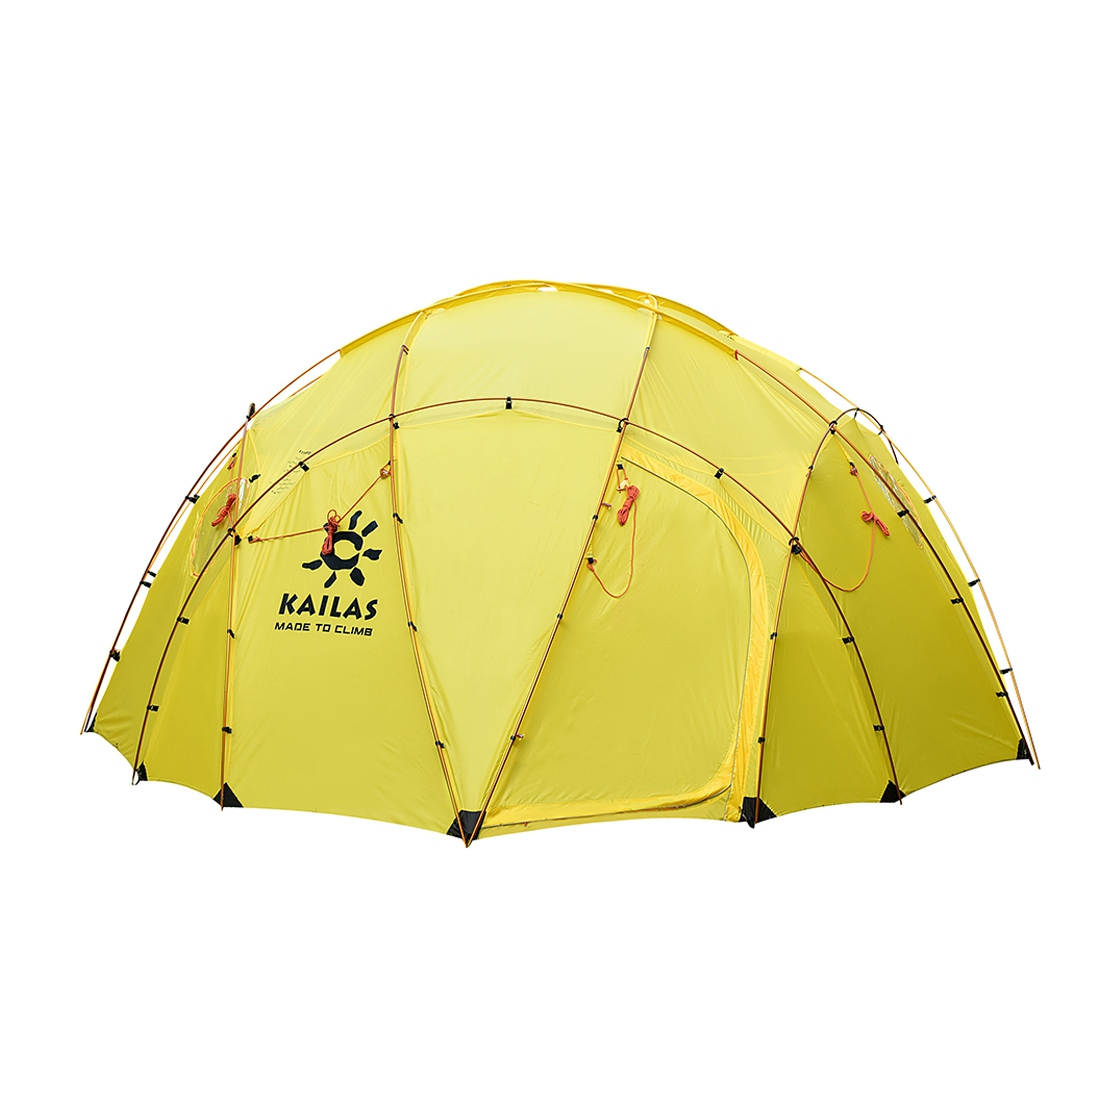 Dome tent example image